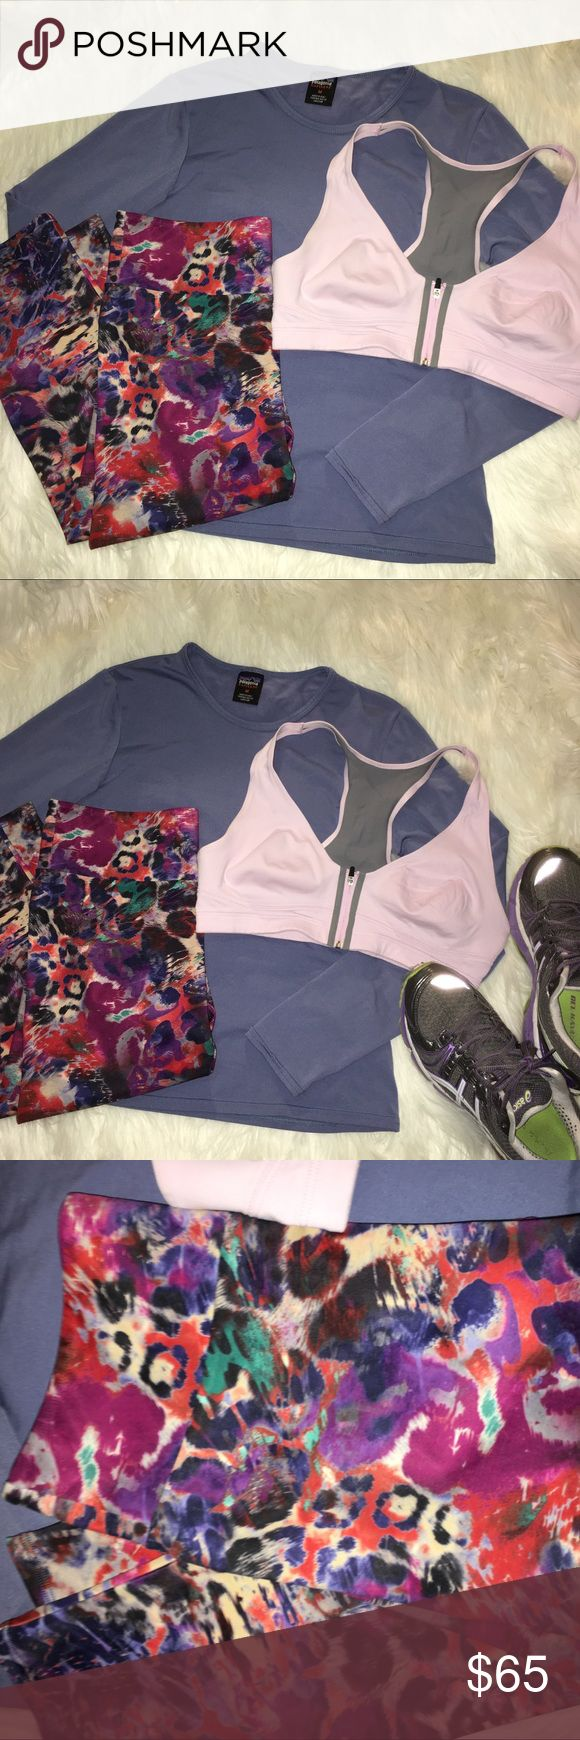 Patagonia workout outfit of three items size M/L This listing includes three items one long sleeve Patagonia shirt medium one legging capri multicolored onzie M/L and one VSX women's sports bra medium. All items are in gently used condition.  Shoes are not included in listing. Patagonia Tops Tees - Long Sleeve